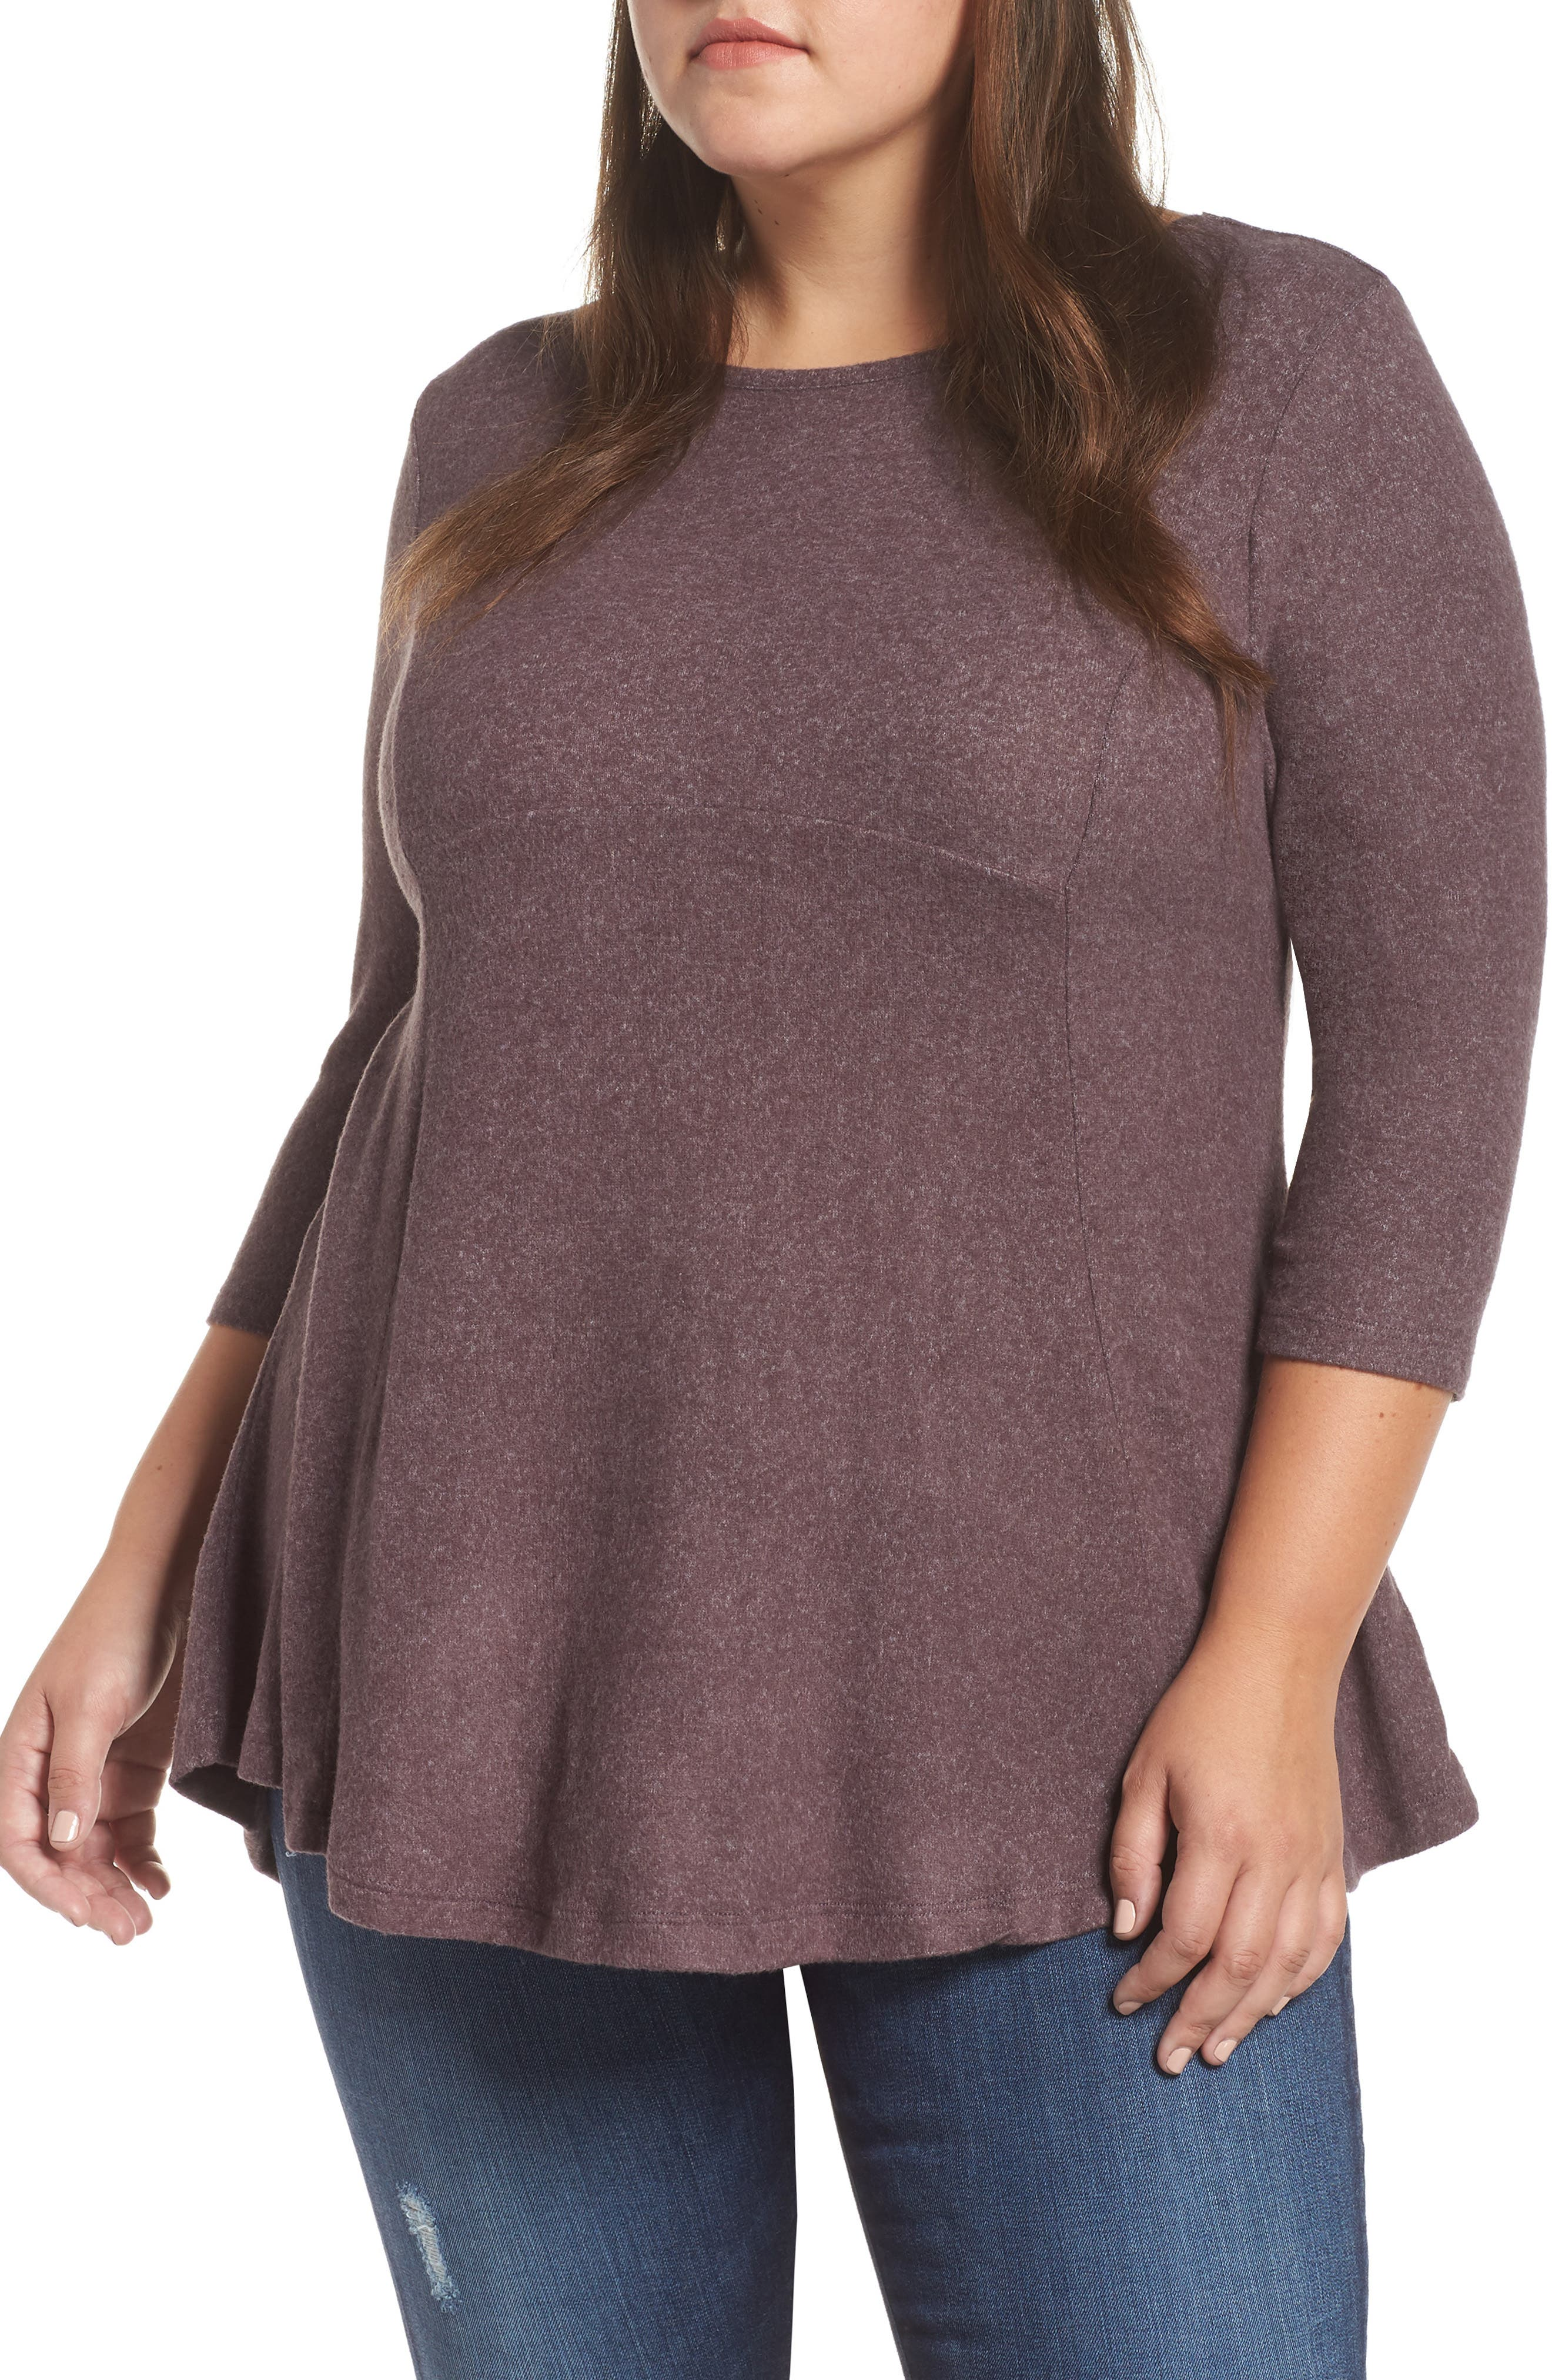 BOBEAU Brushed Knit Babydoll Top in Peppercorn